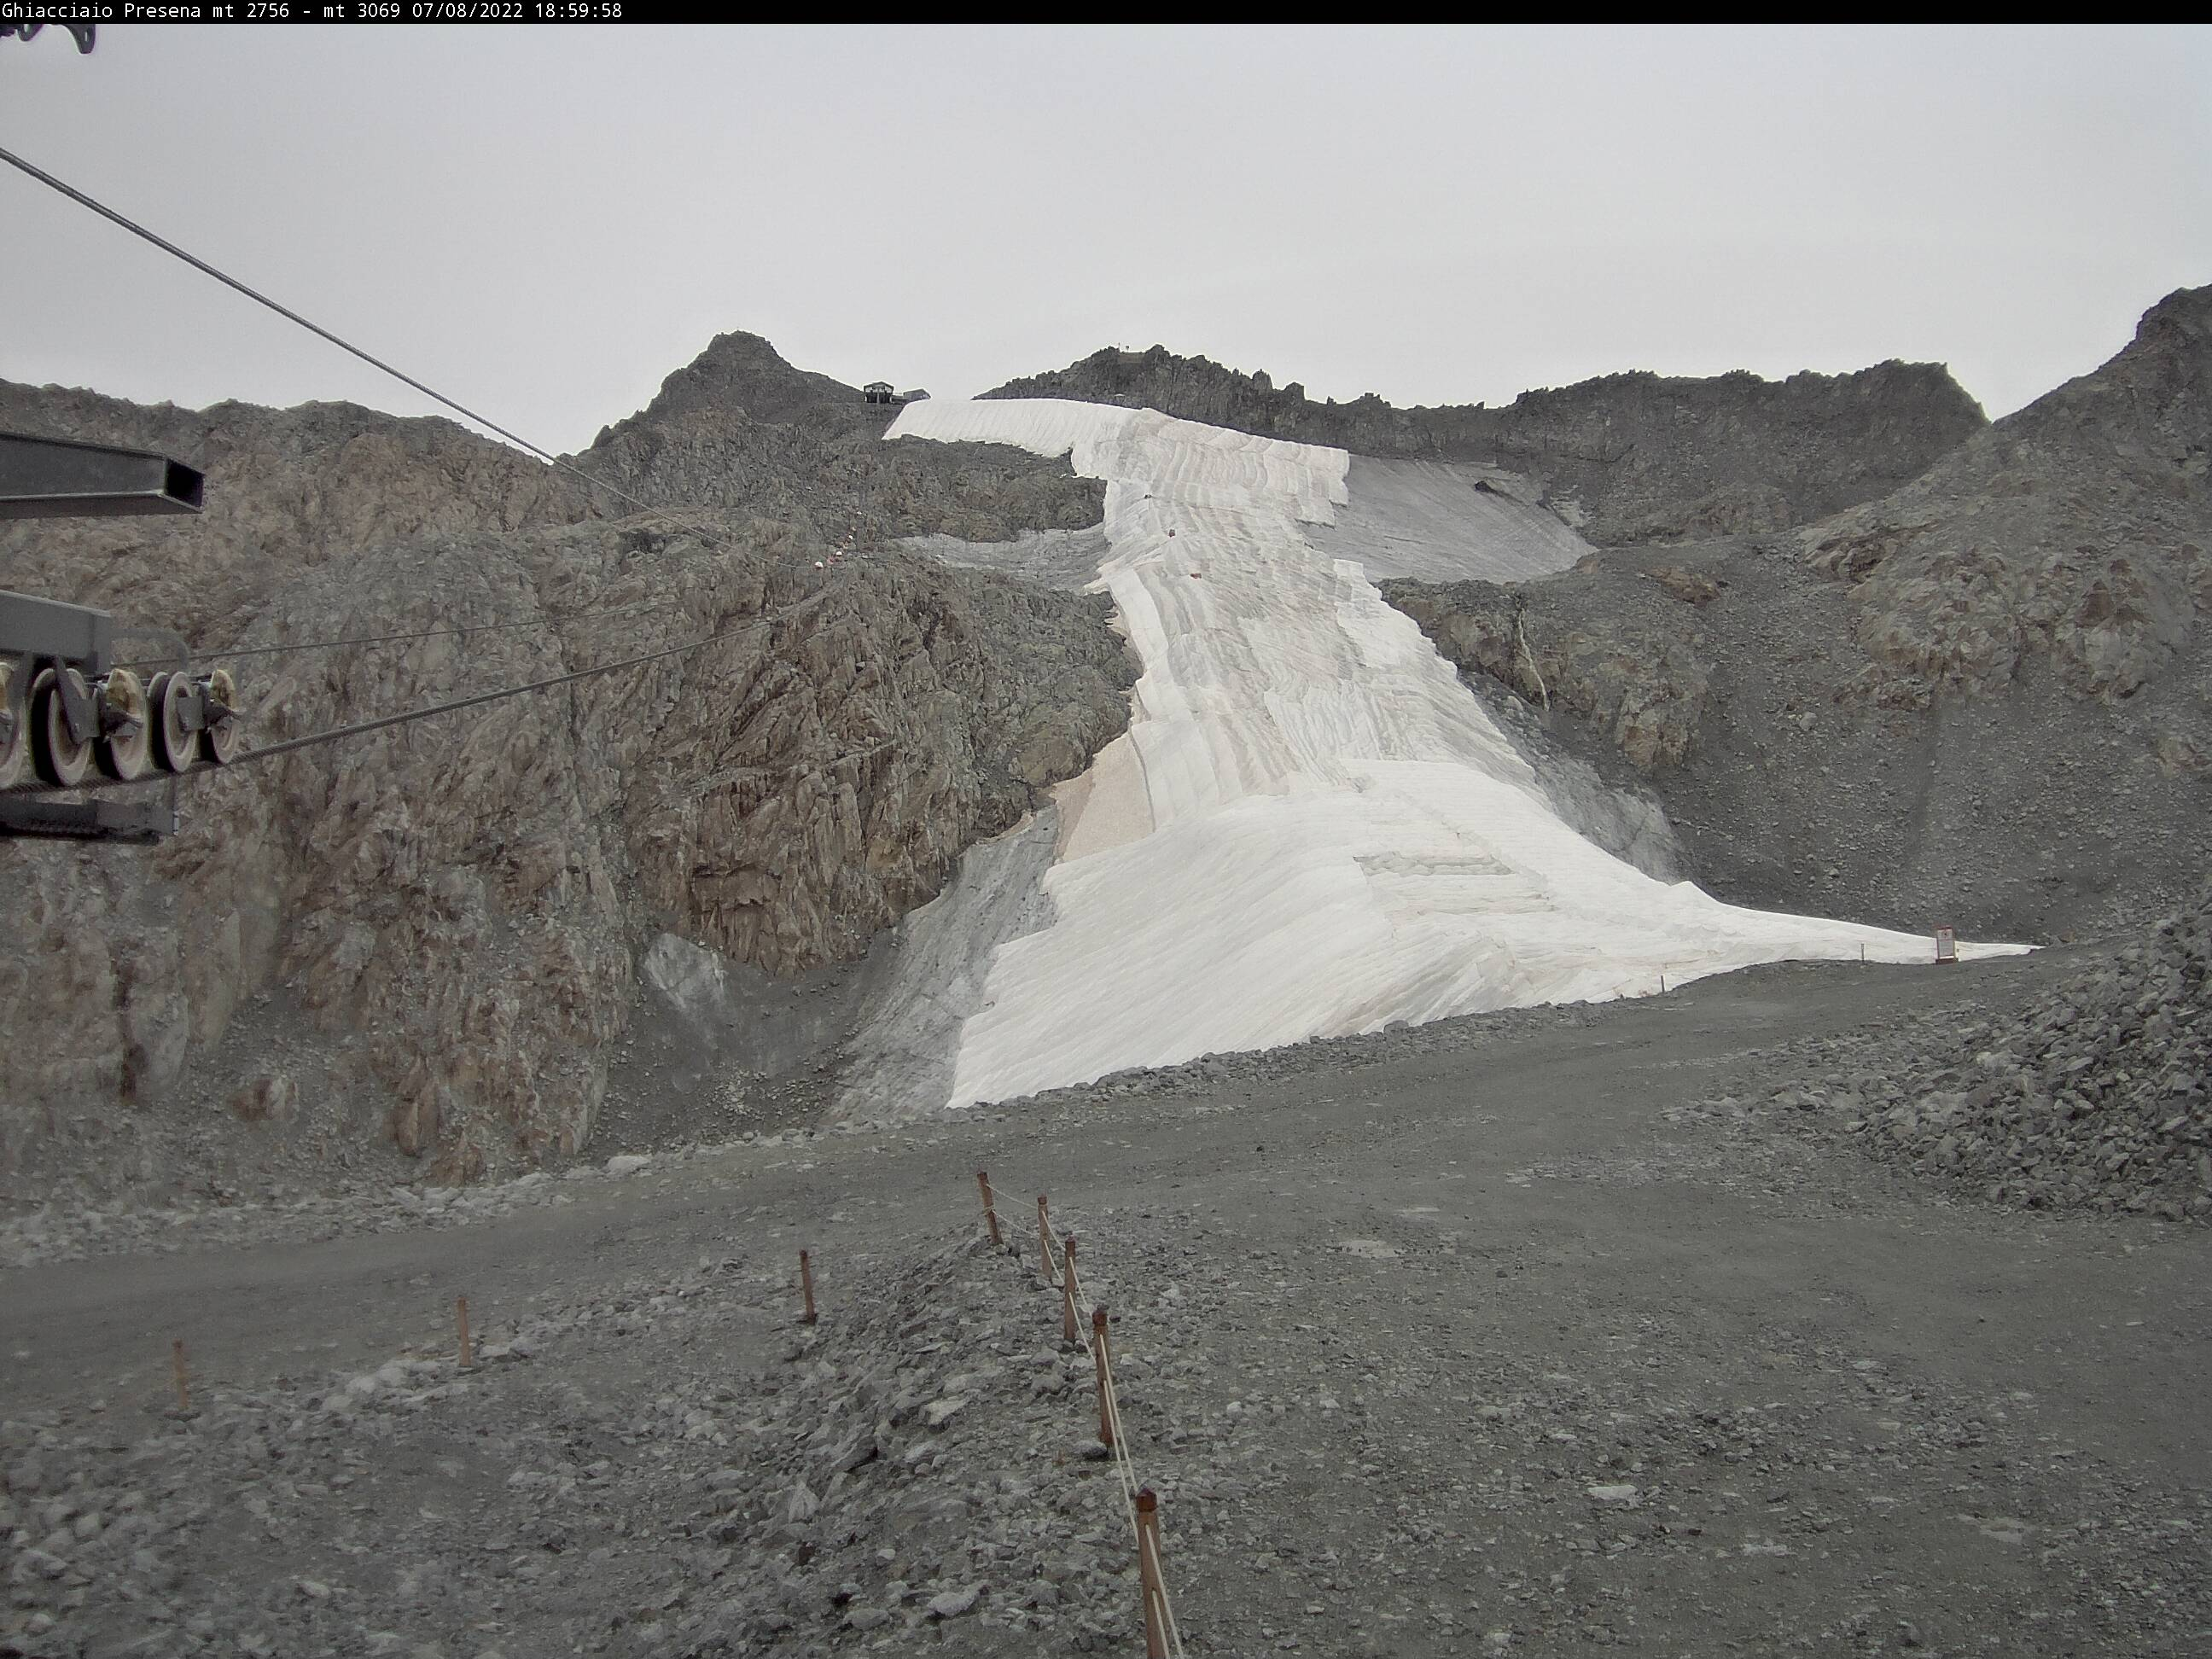 Guarda le Webcam del Tonale Presena